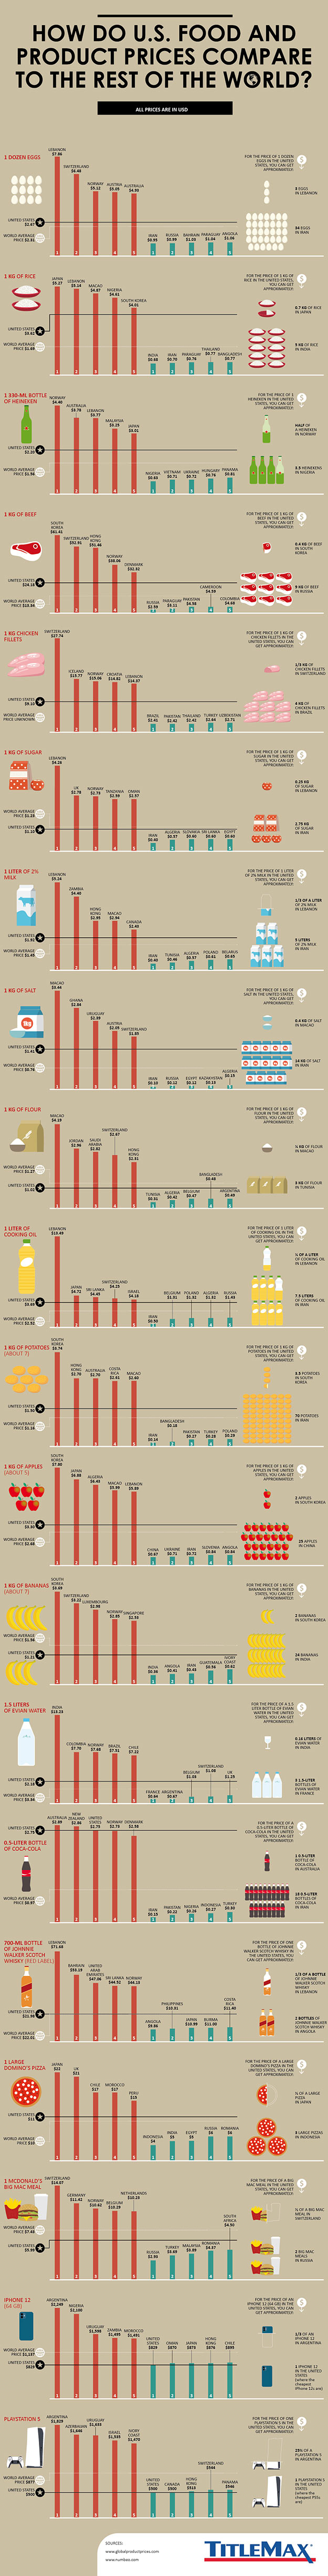 Infographic for How Do U.S. Food and Product Prices Compare to the Rest of the World